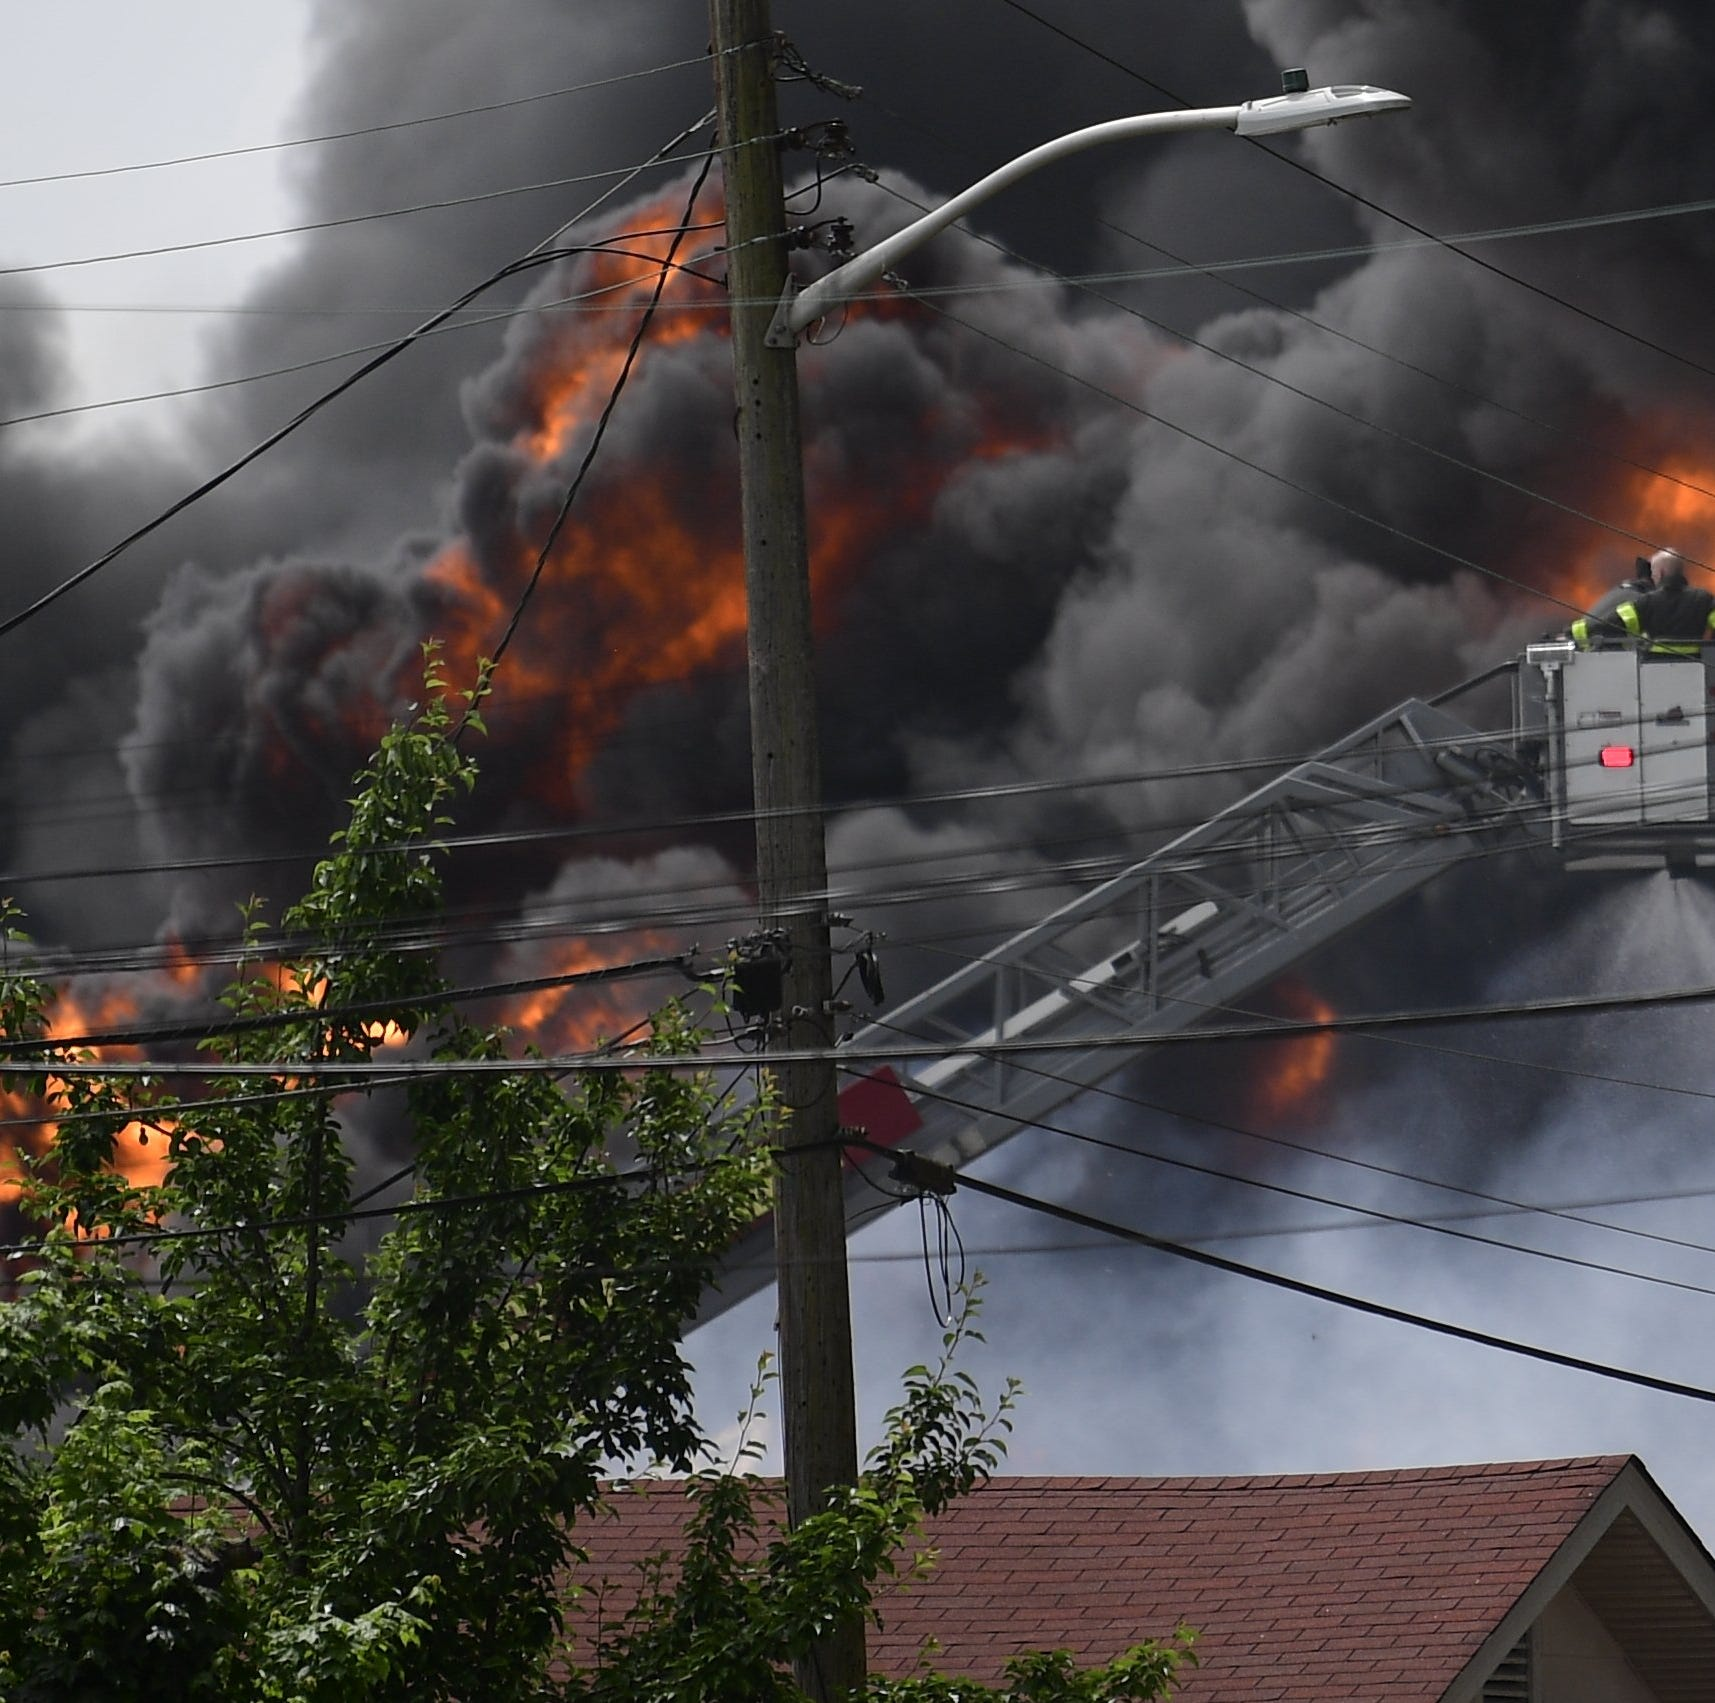 Evacuations begin as crews battle massive blaze at Fort Loudon recycling center